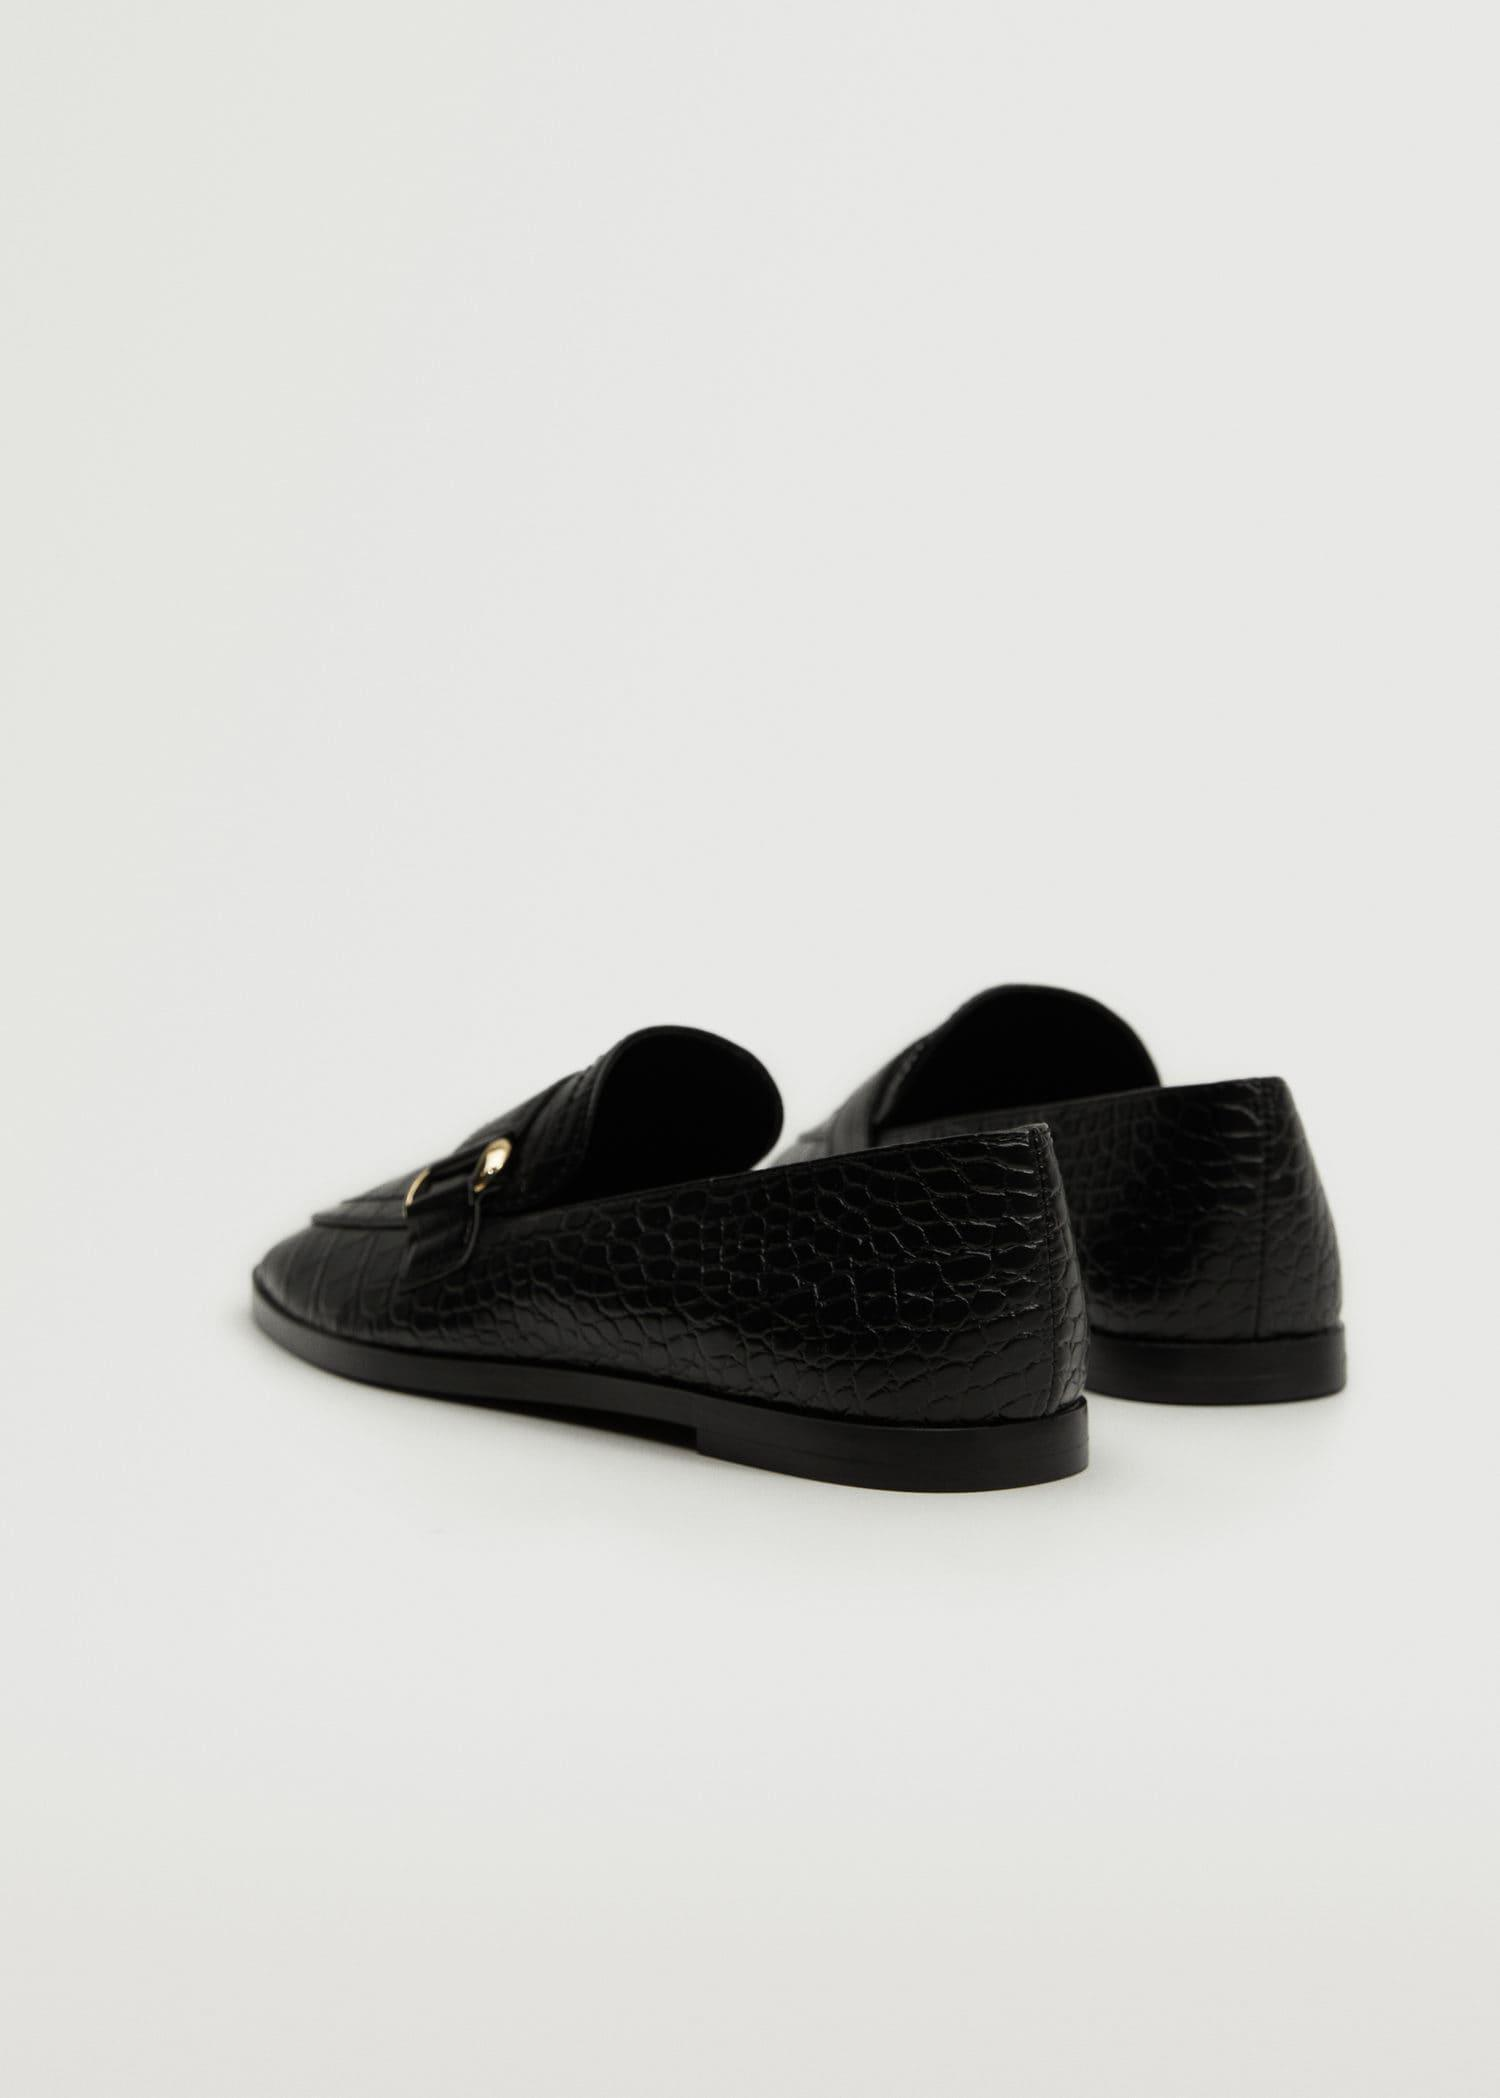 Buckle coco moccasins 3